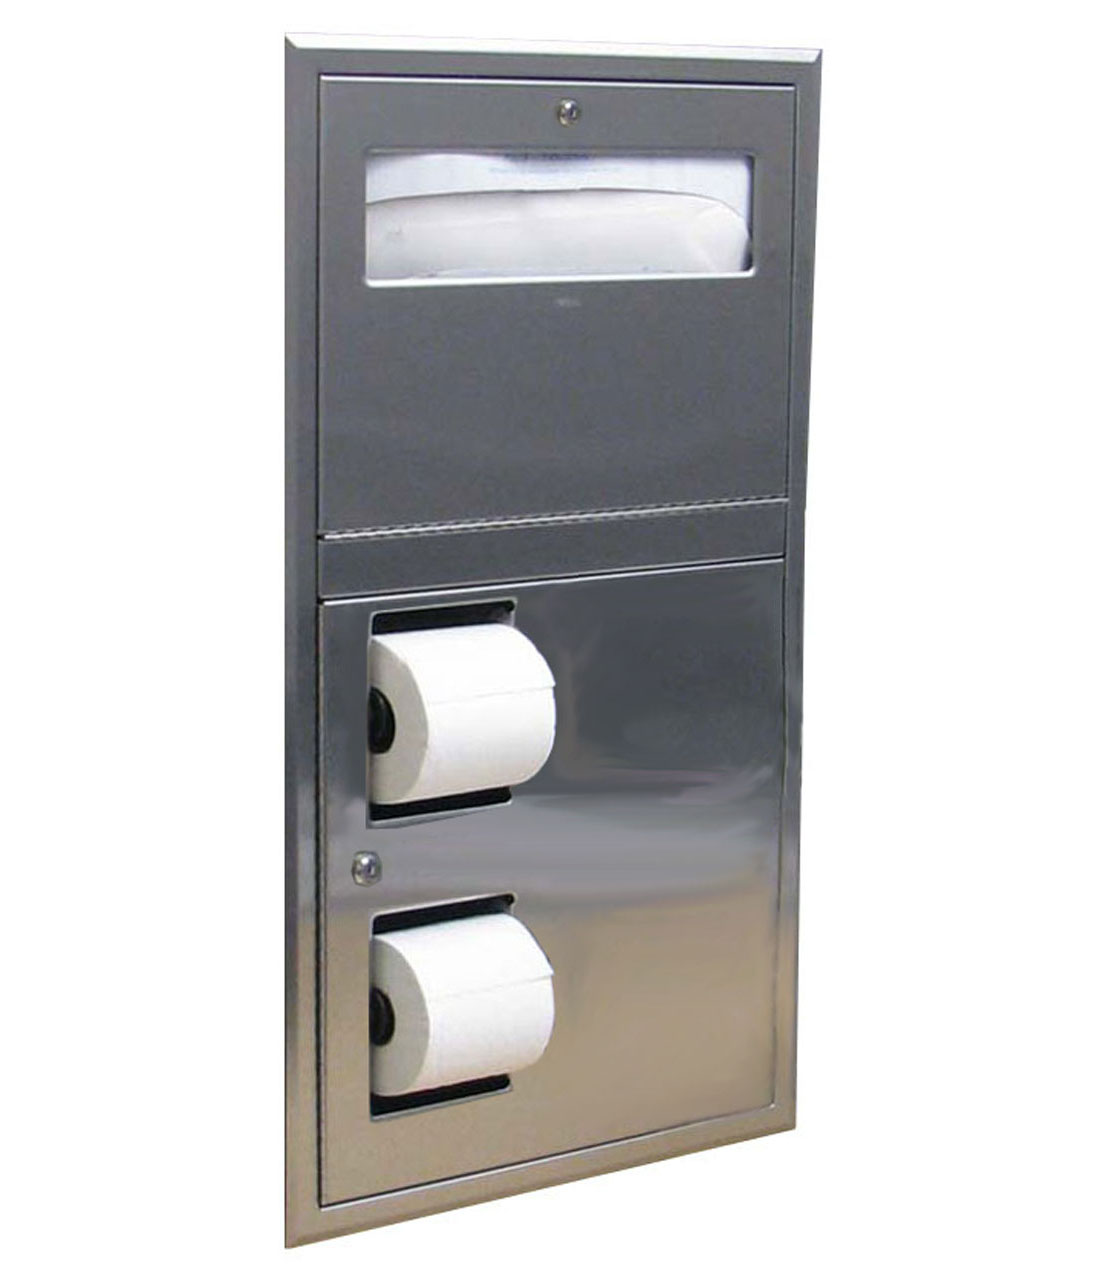 bobrick 819844 recessed toilet seat cover and toilet tissue dispenser - Bobrick Toilet Paper Dispenser